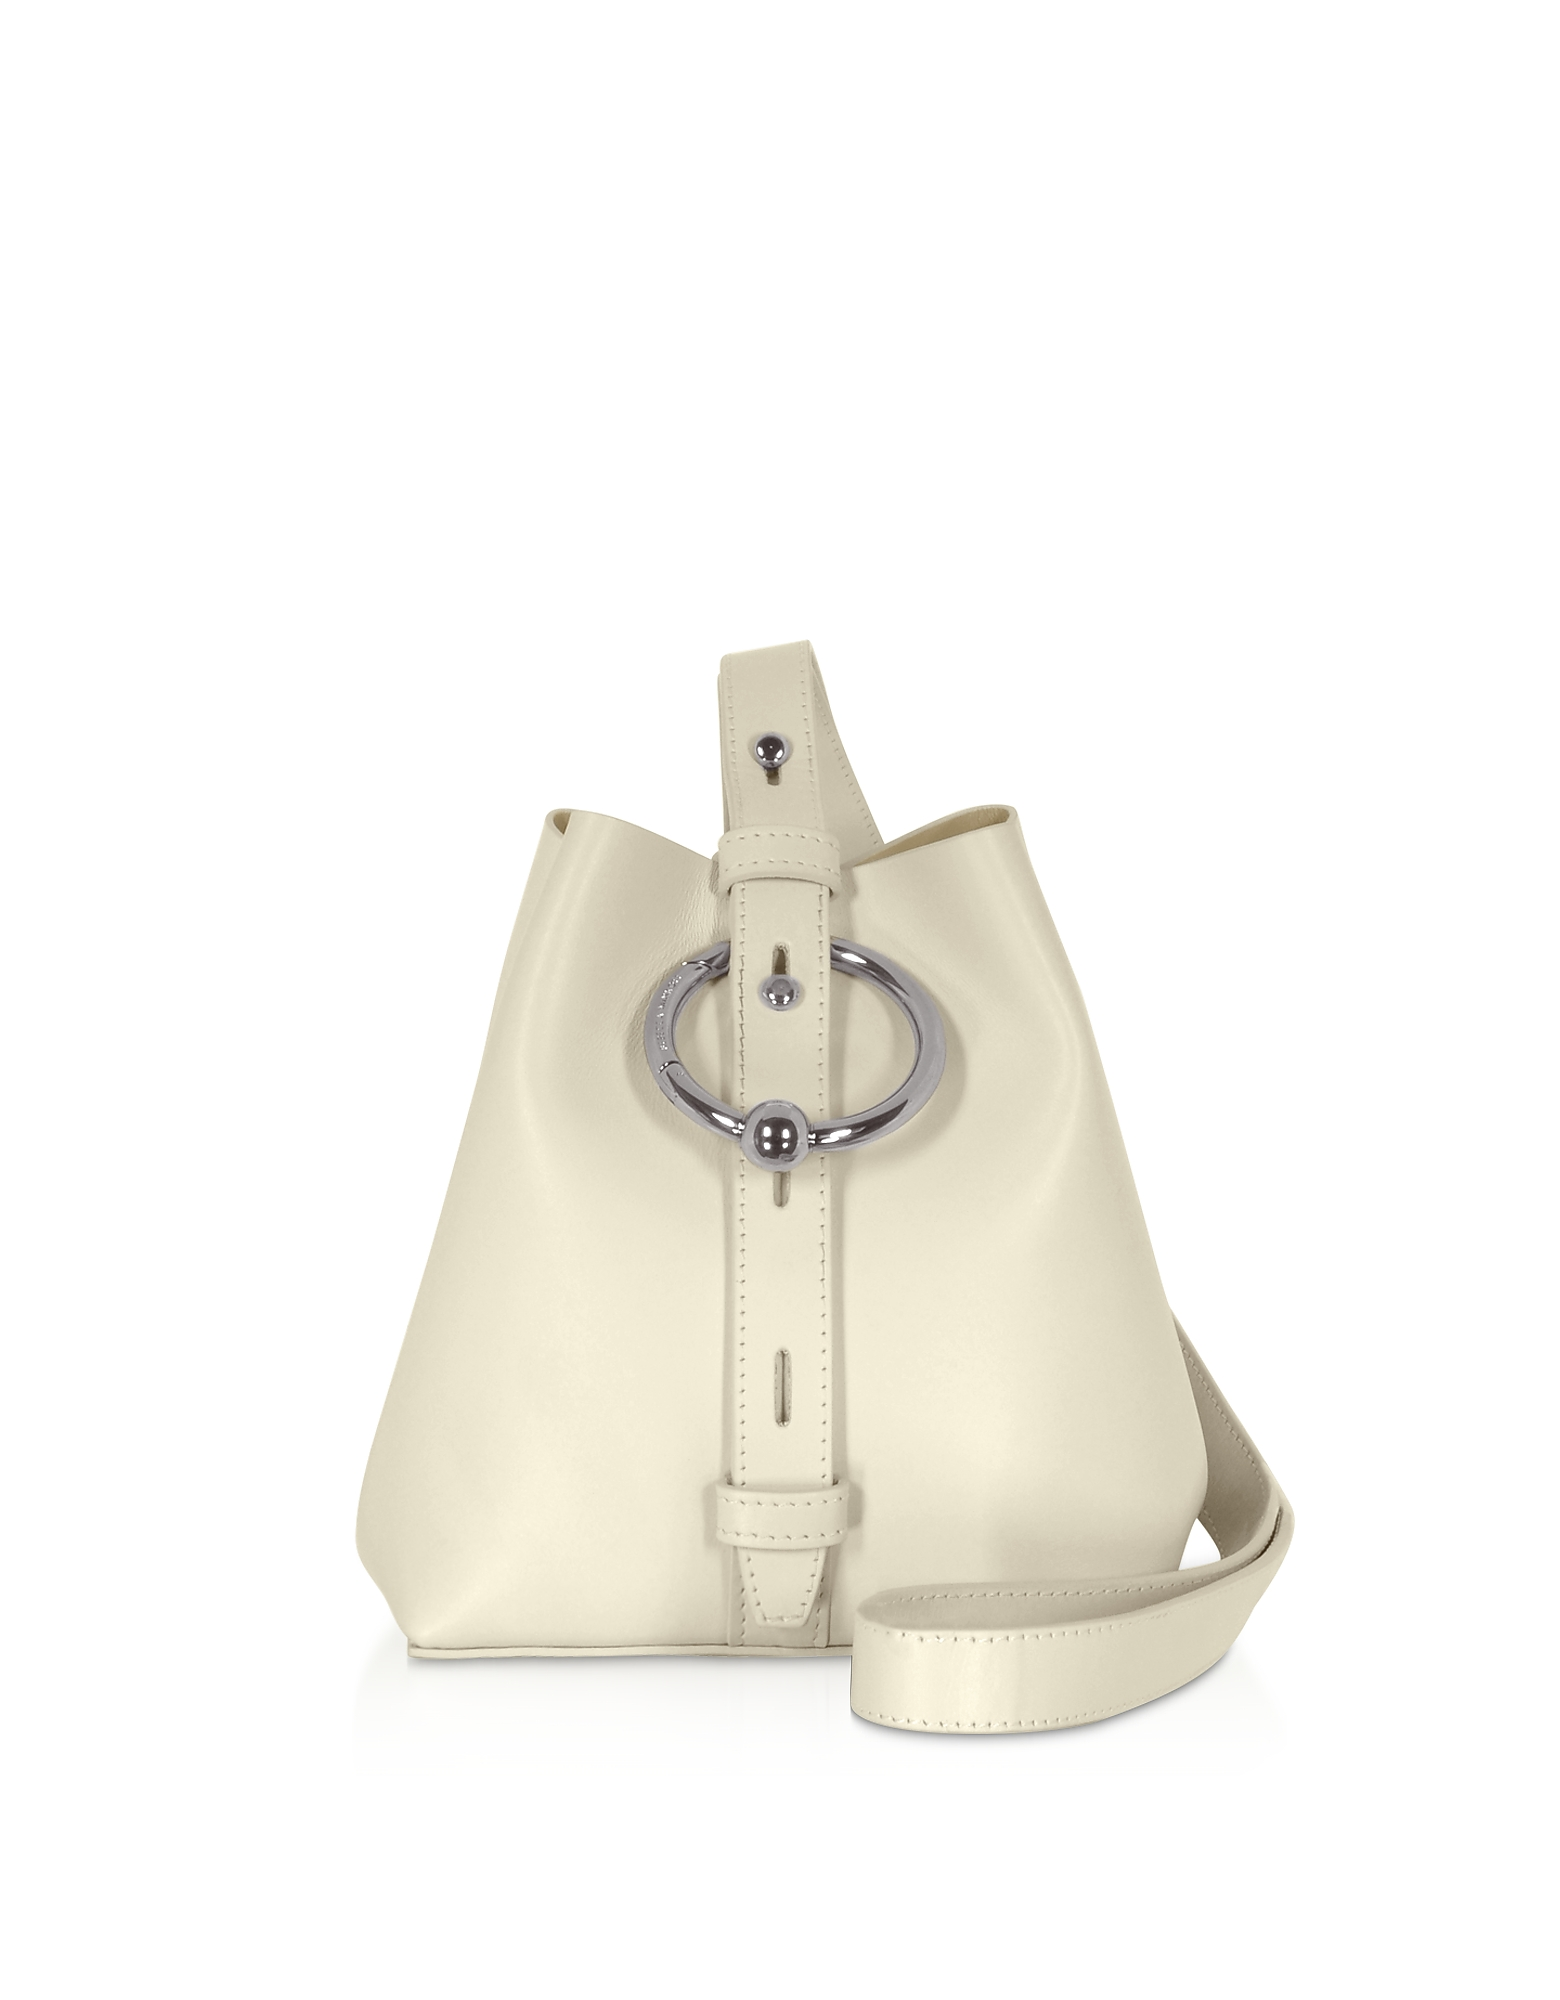 Rebecca Minkoff Designer Handbags, Nappa Leather Mini Kate Bucket Bag